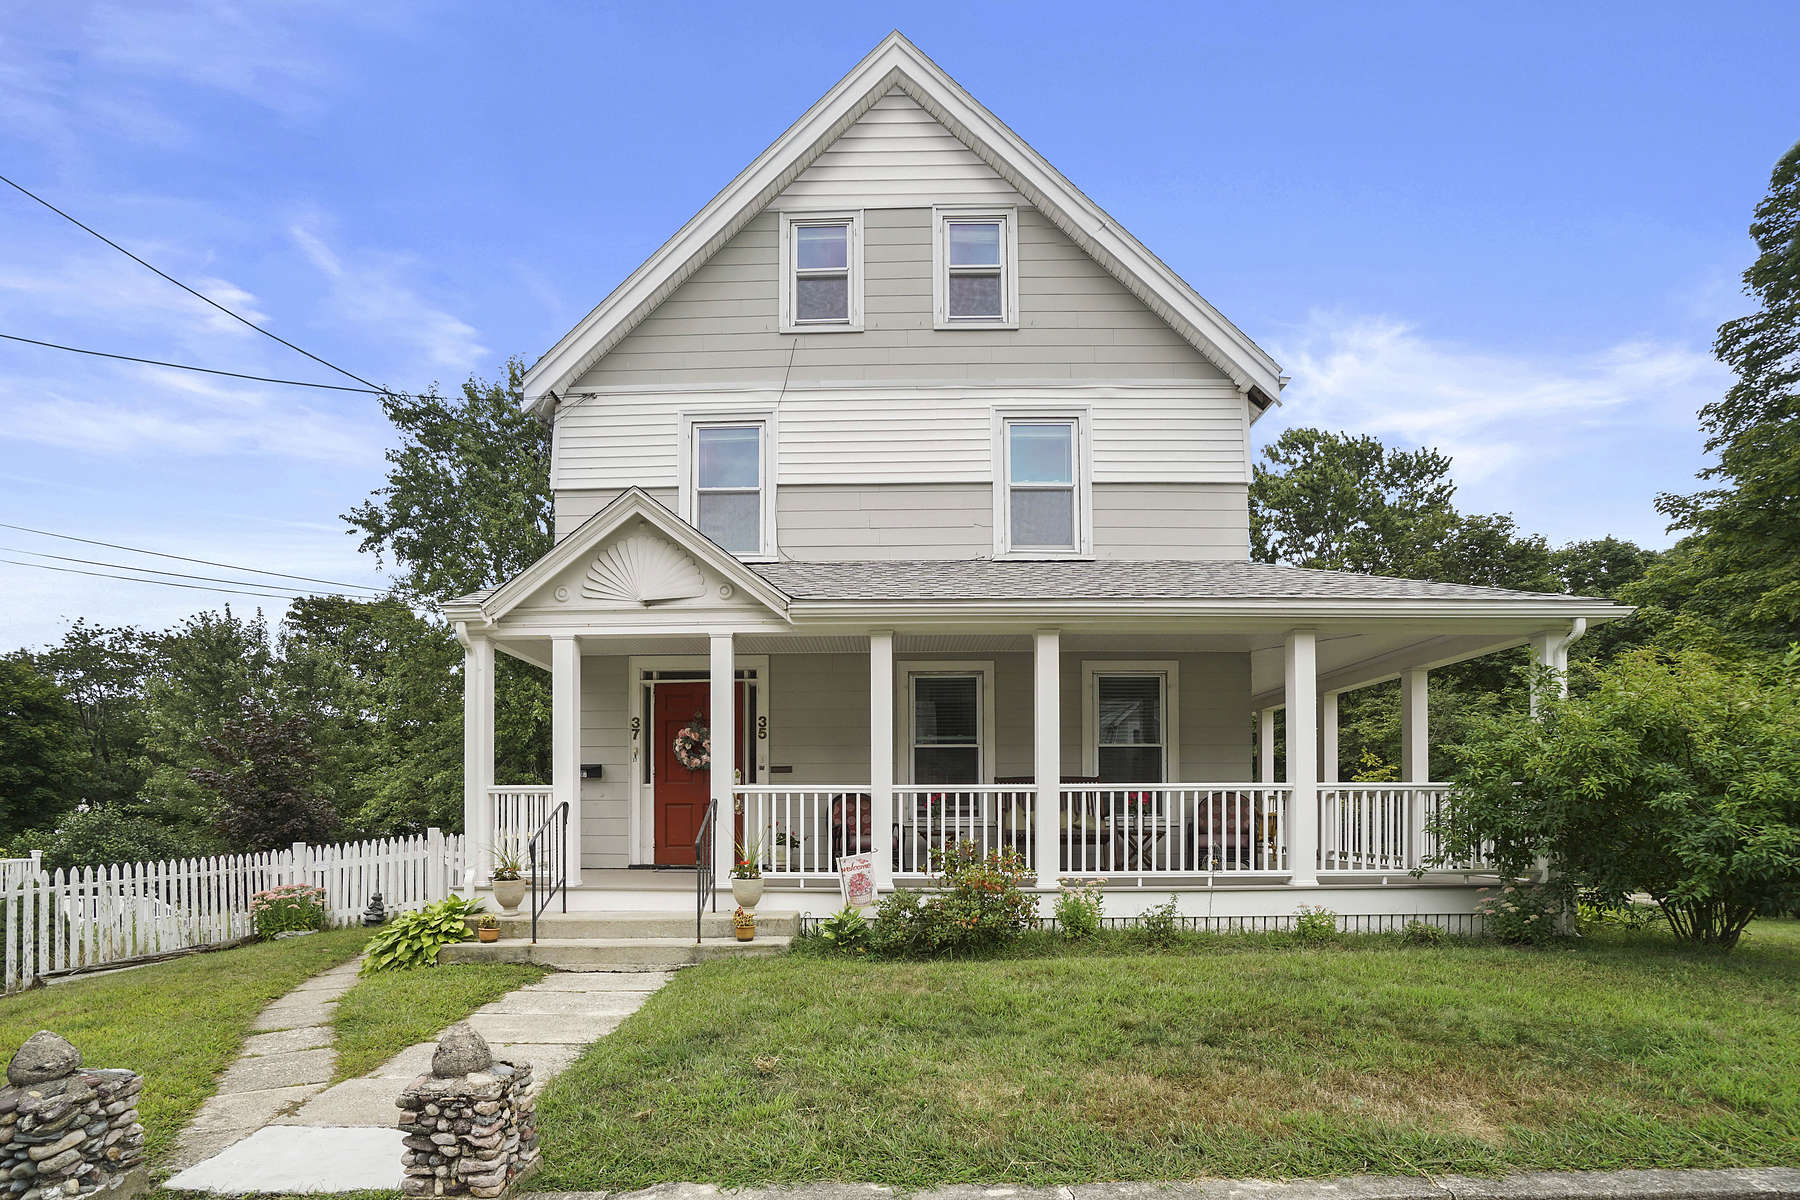 Condominiums for Sale at 37 Phillips Street, Weymouth 37 Phillips Street Weymouth, Massachusetts 02188 United States